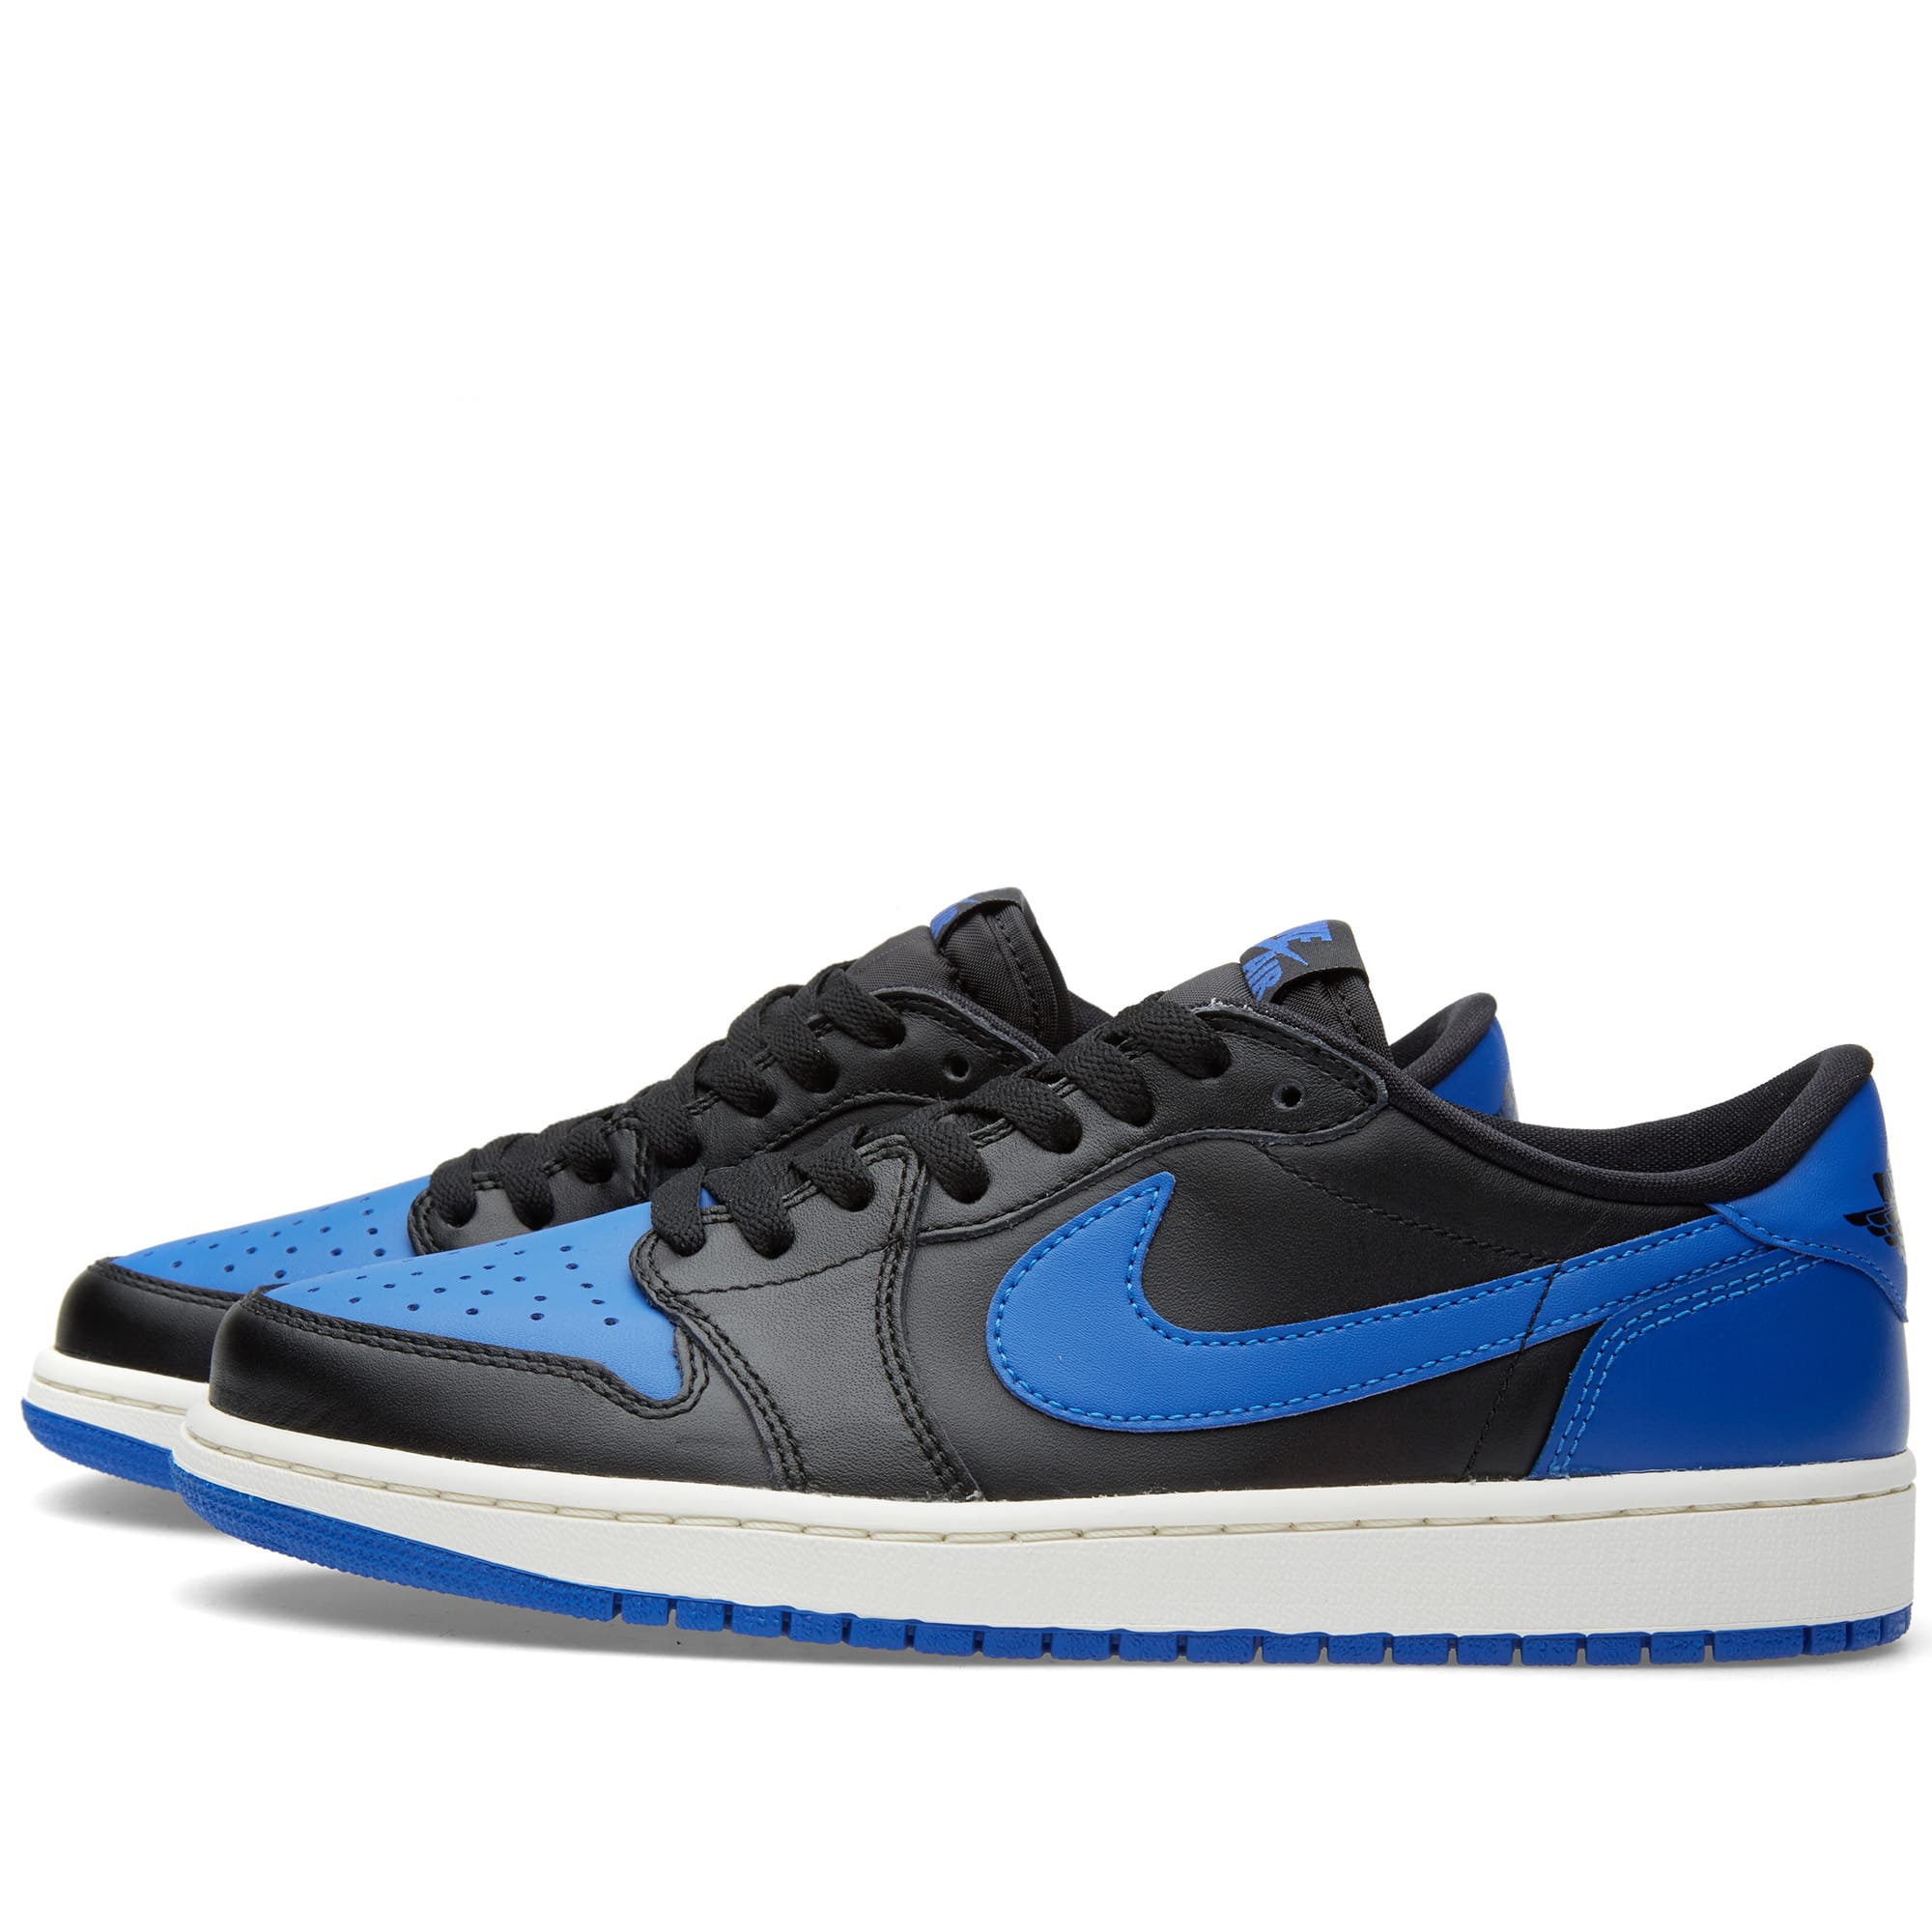 ba64f665d30 Nike Air Jordan 1 Retro Low OG